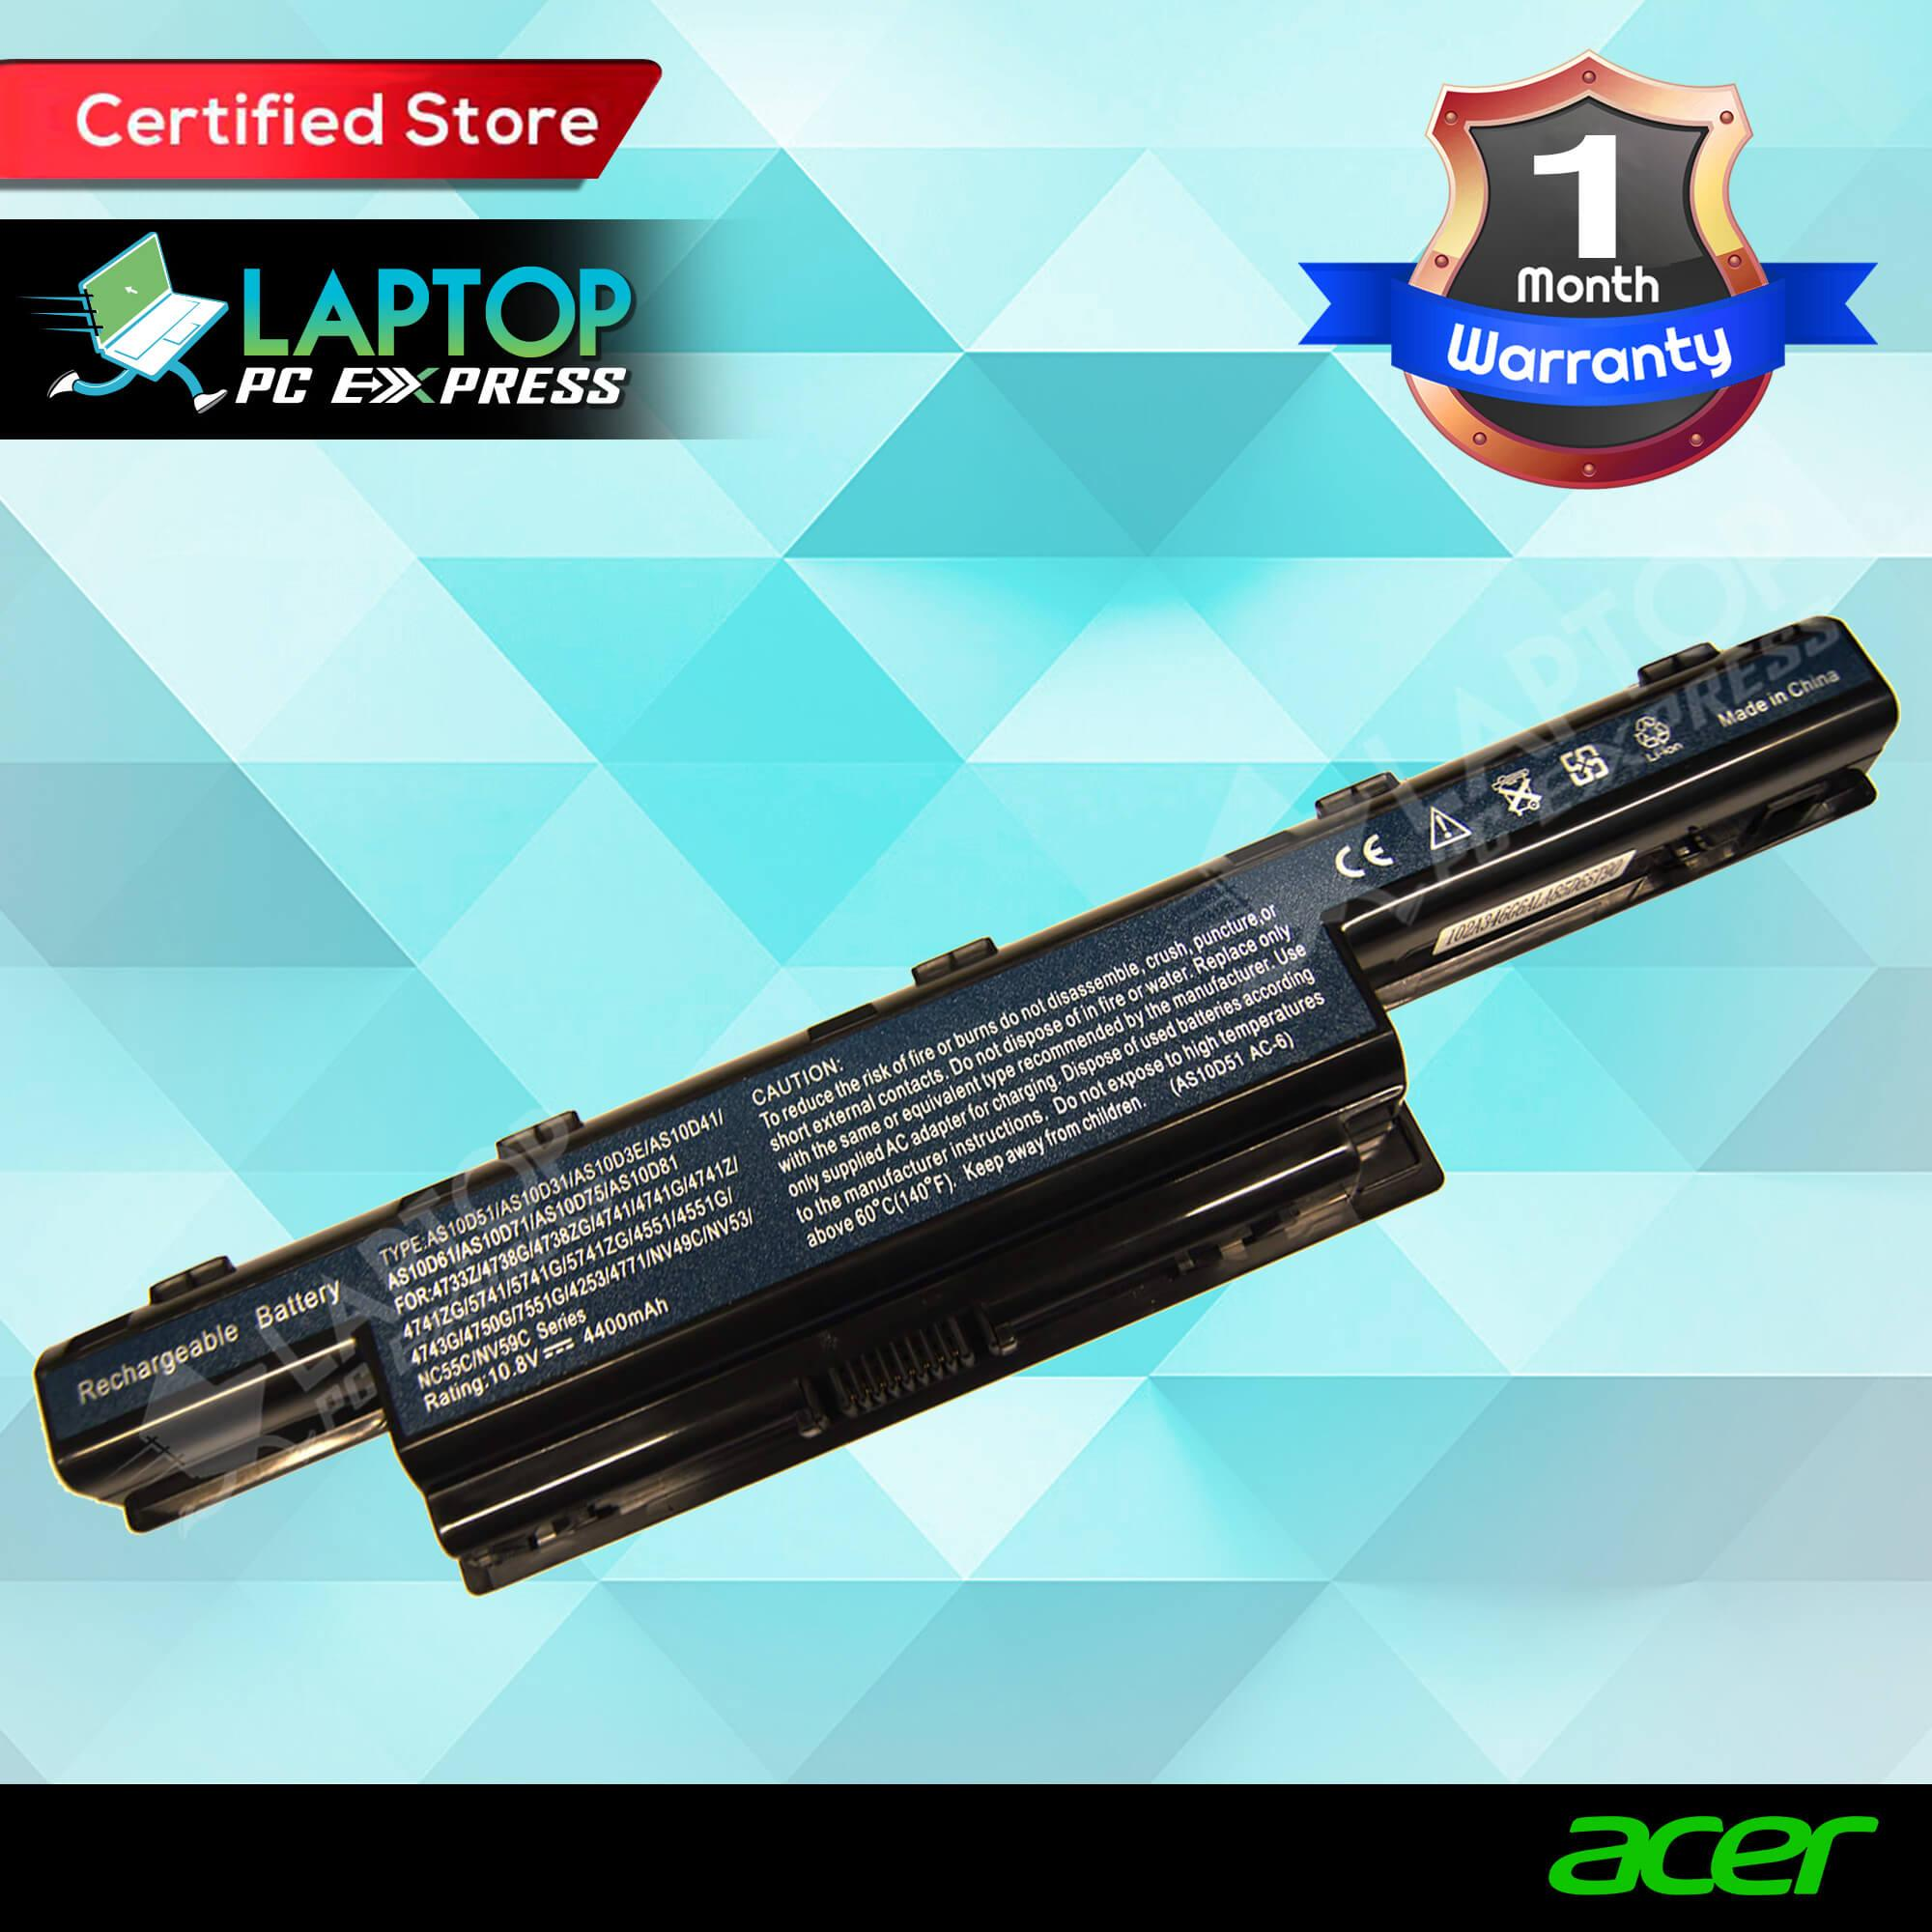 Acer Philippines -Acer Computer Batteries for sale - prices